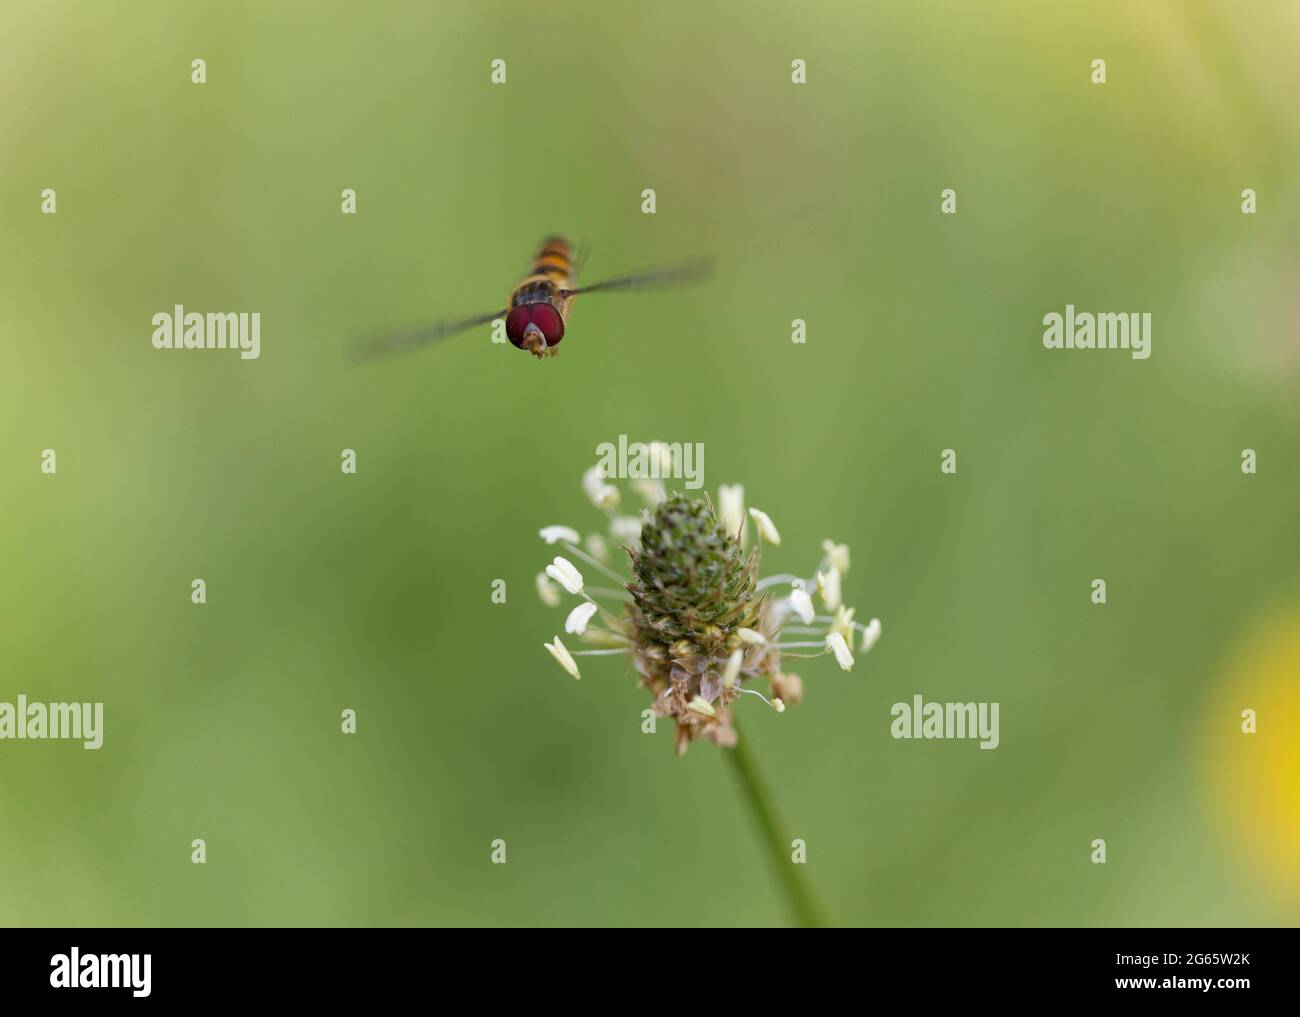 Marmalade Hoverfly Episyrphus balteatus flying or foraging on flower Stock Photo